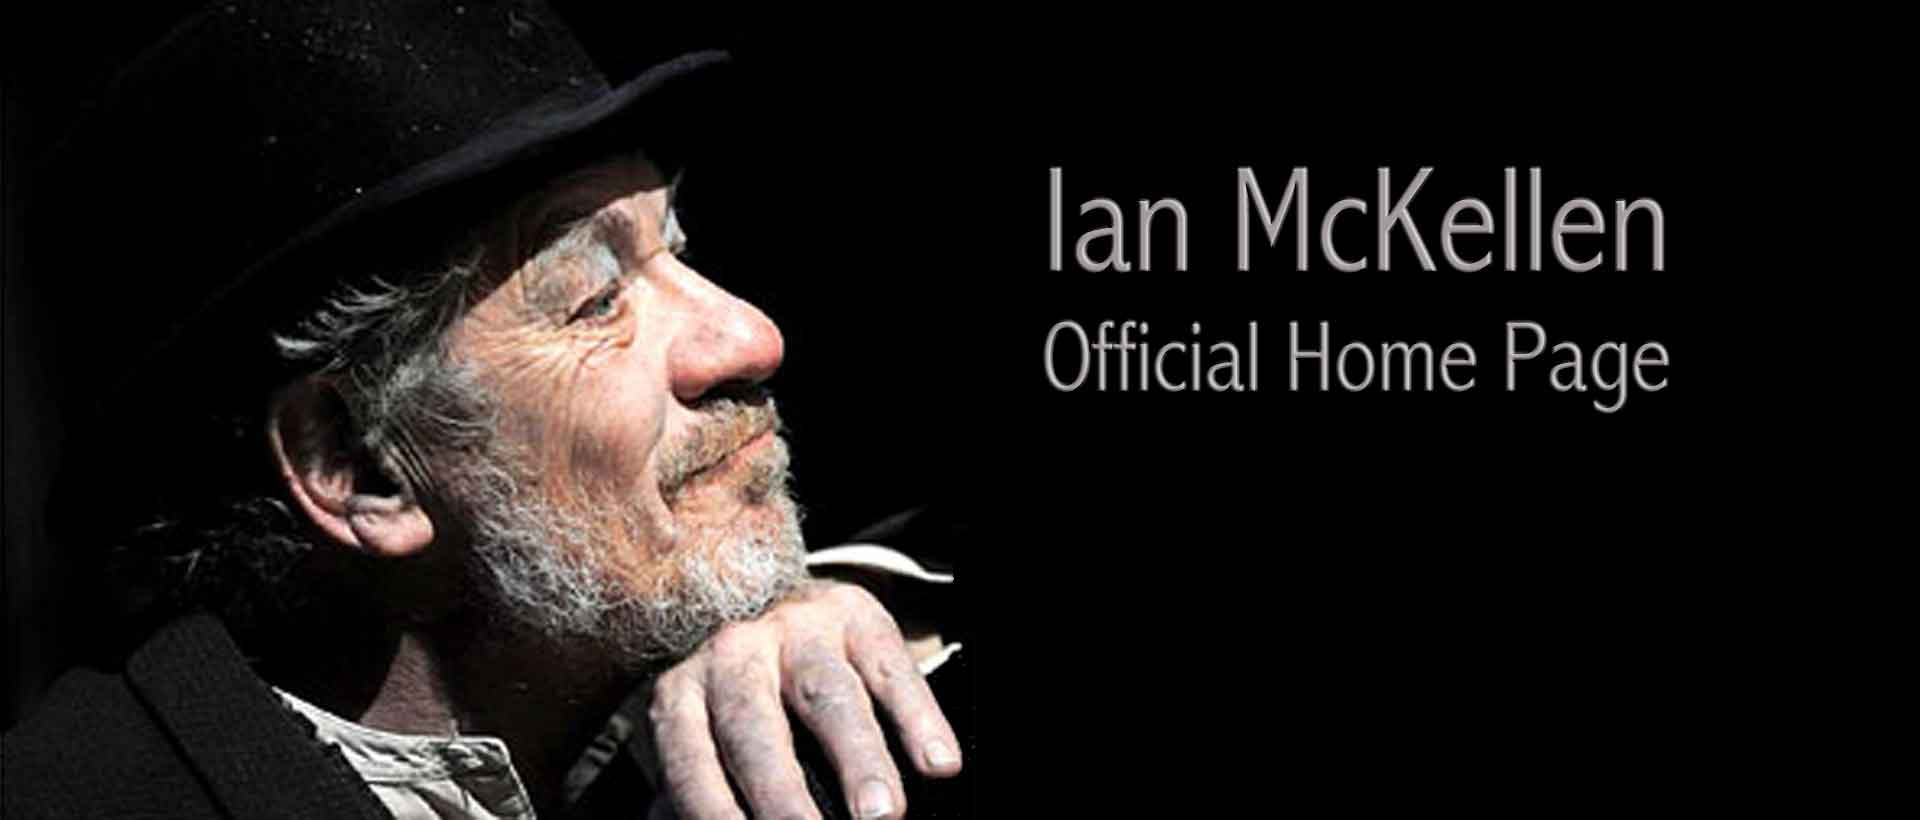 Ian McKellen Official Home Page